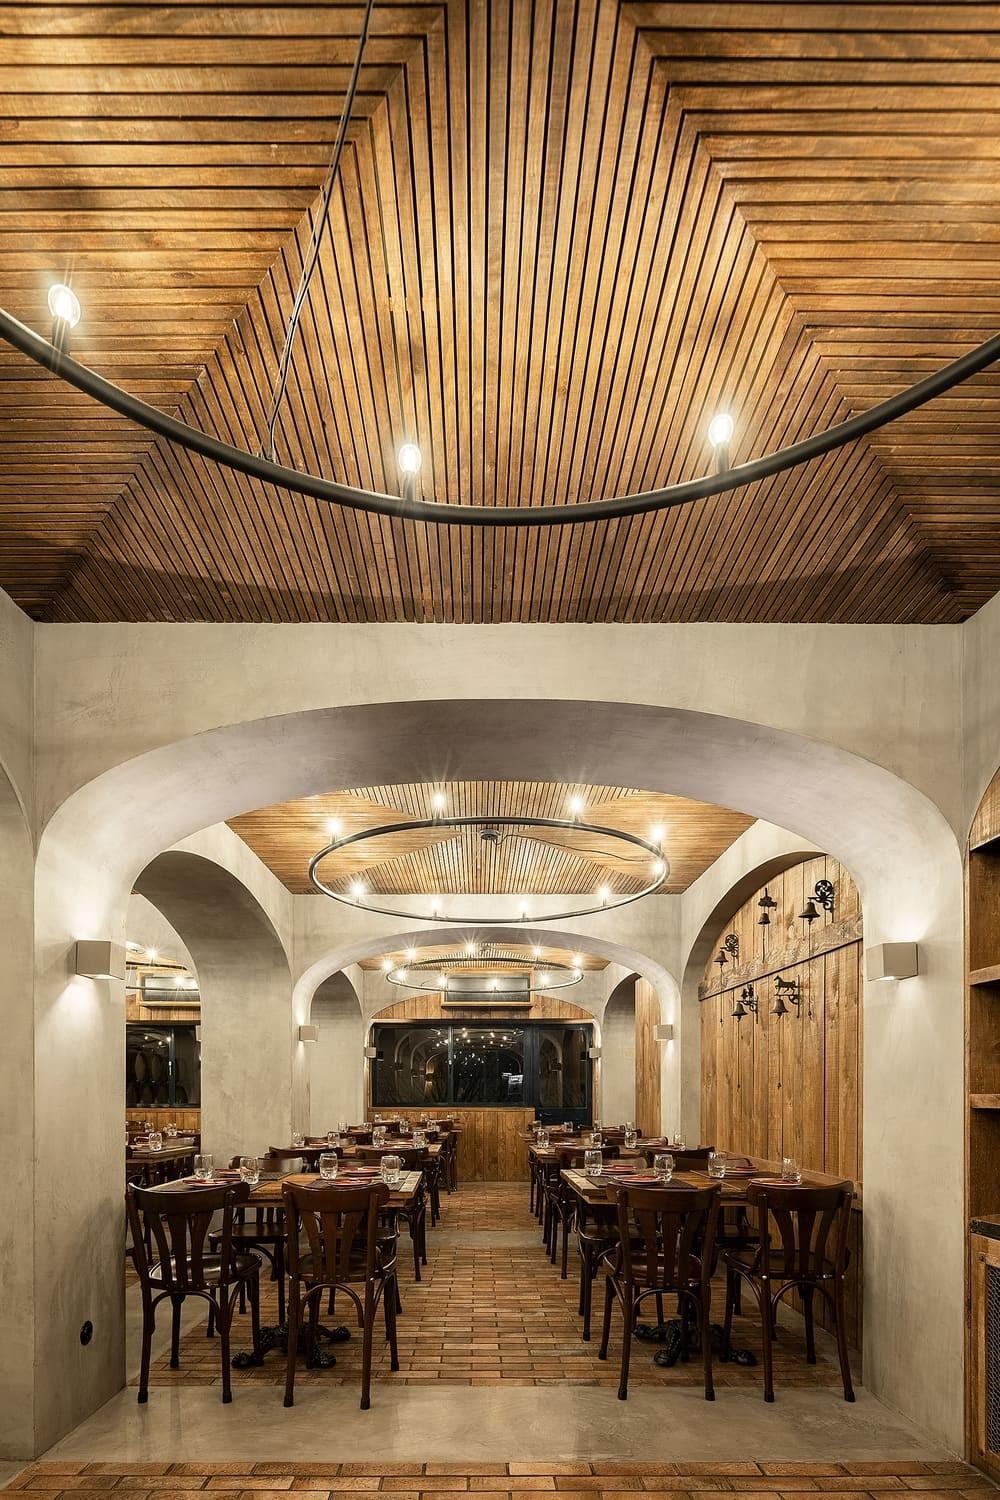 Restaurante Barril, A Restaurant Inspired in the Typical Portuguese Wineries